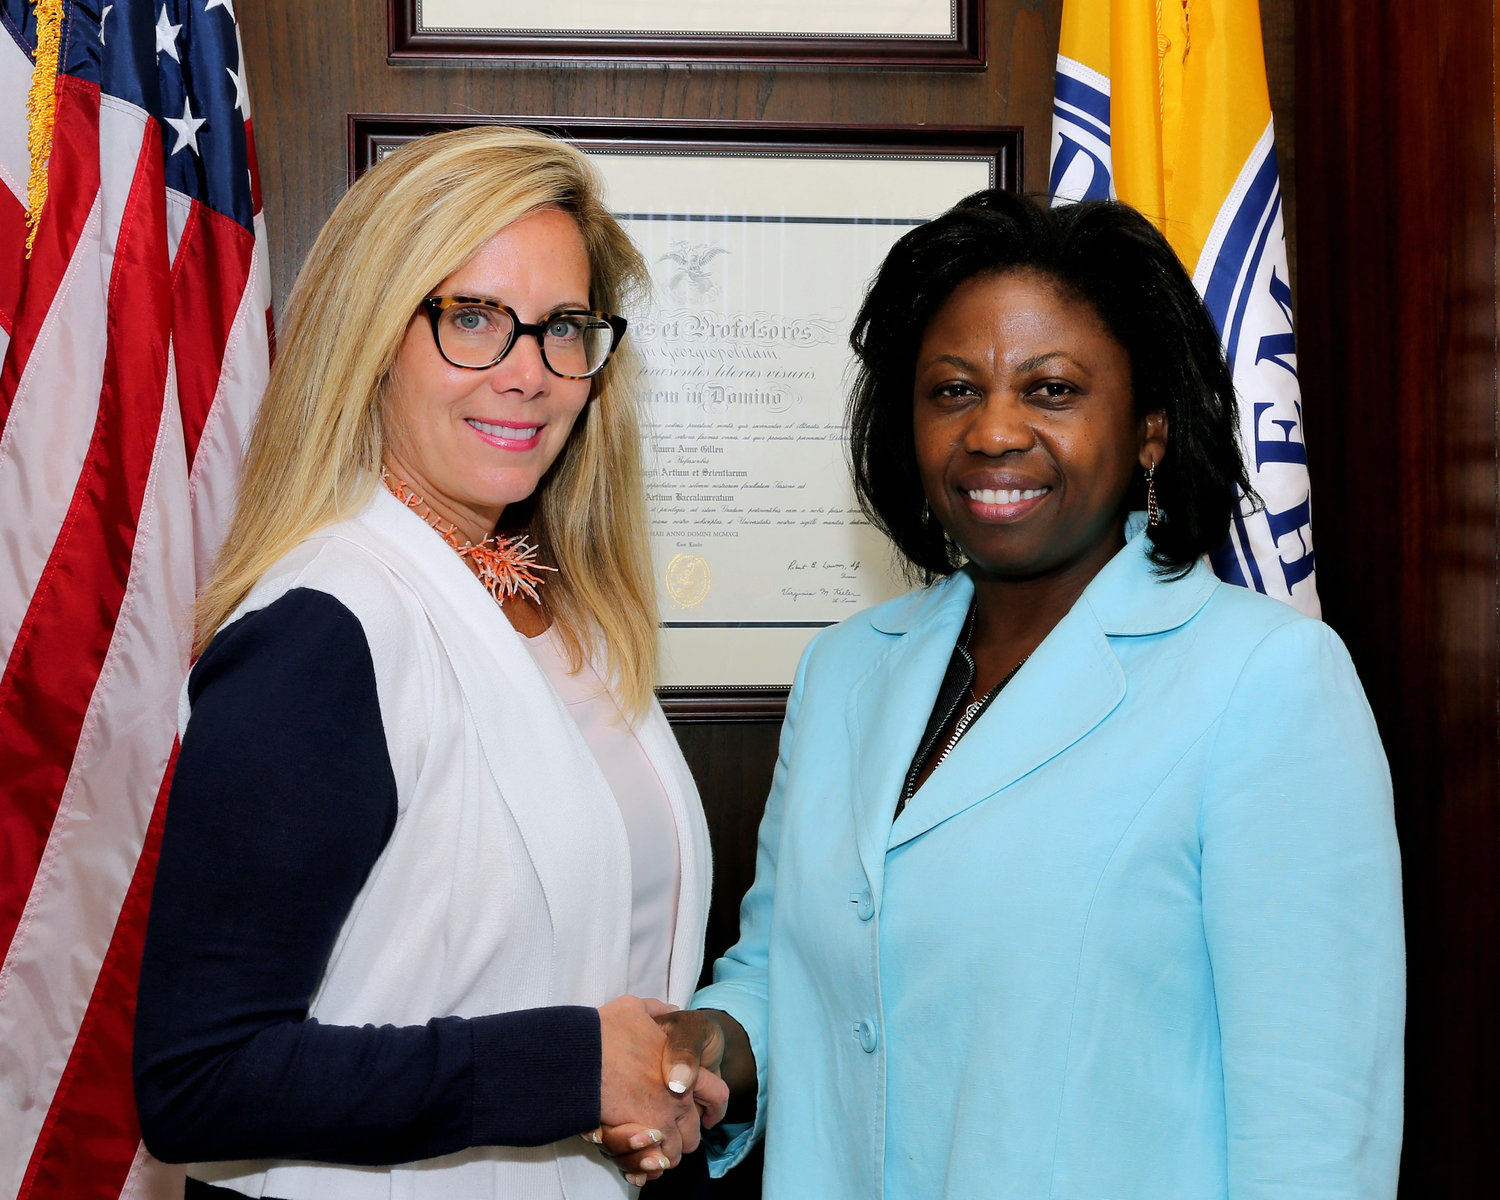 Town of Hempstead Republicans claim that the appointment of Elmont resident Averil Smith, right, as acting comptroller violates civil service law. Supervisor Laura Gillen, left, made the appointment recently.